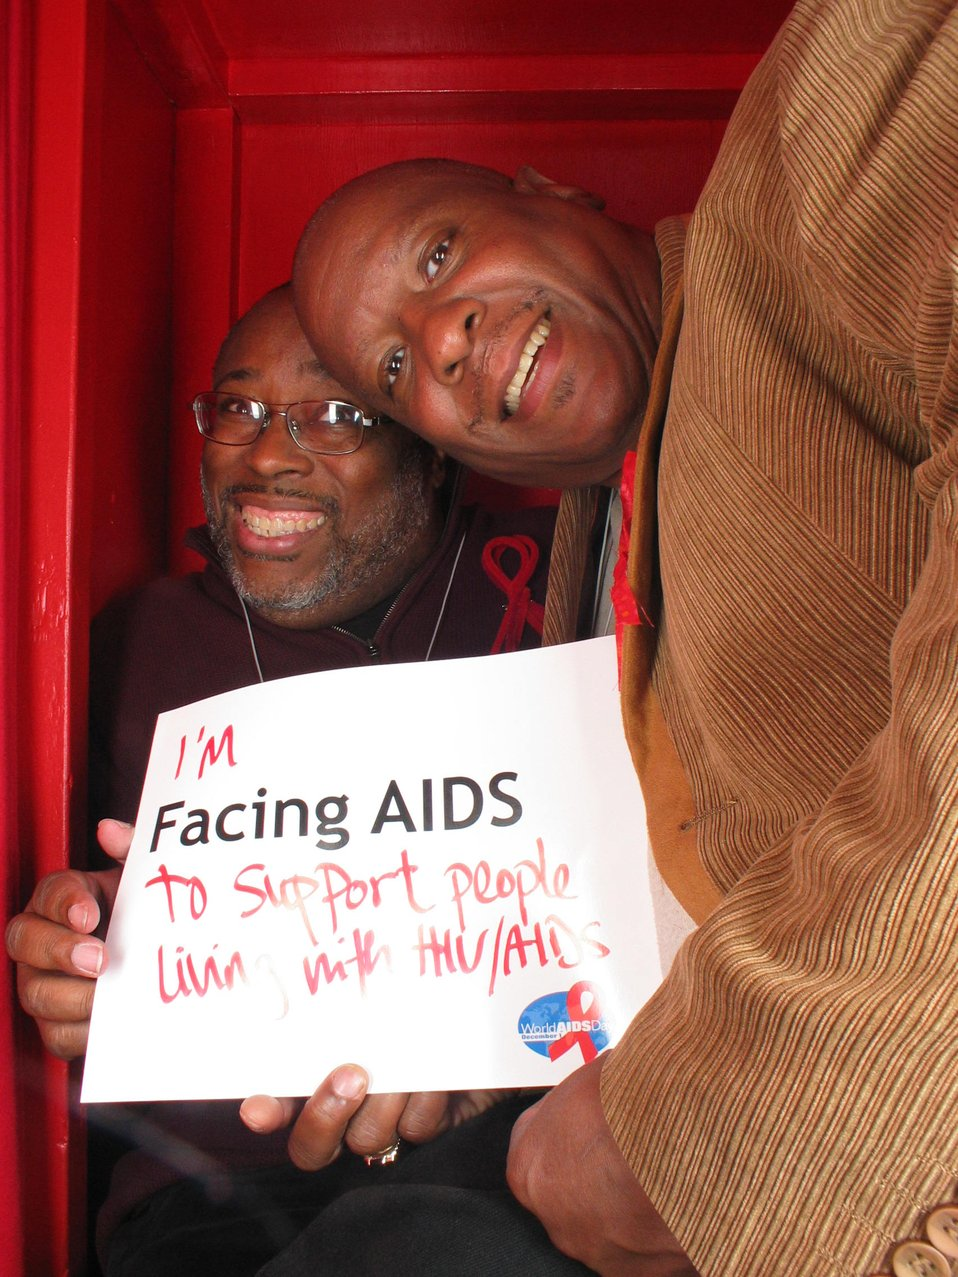 I'm Facing AIDS to support people living with HIV/AIDS